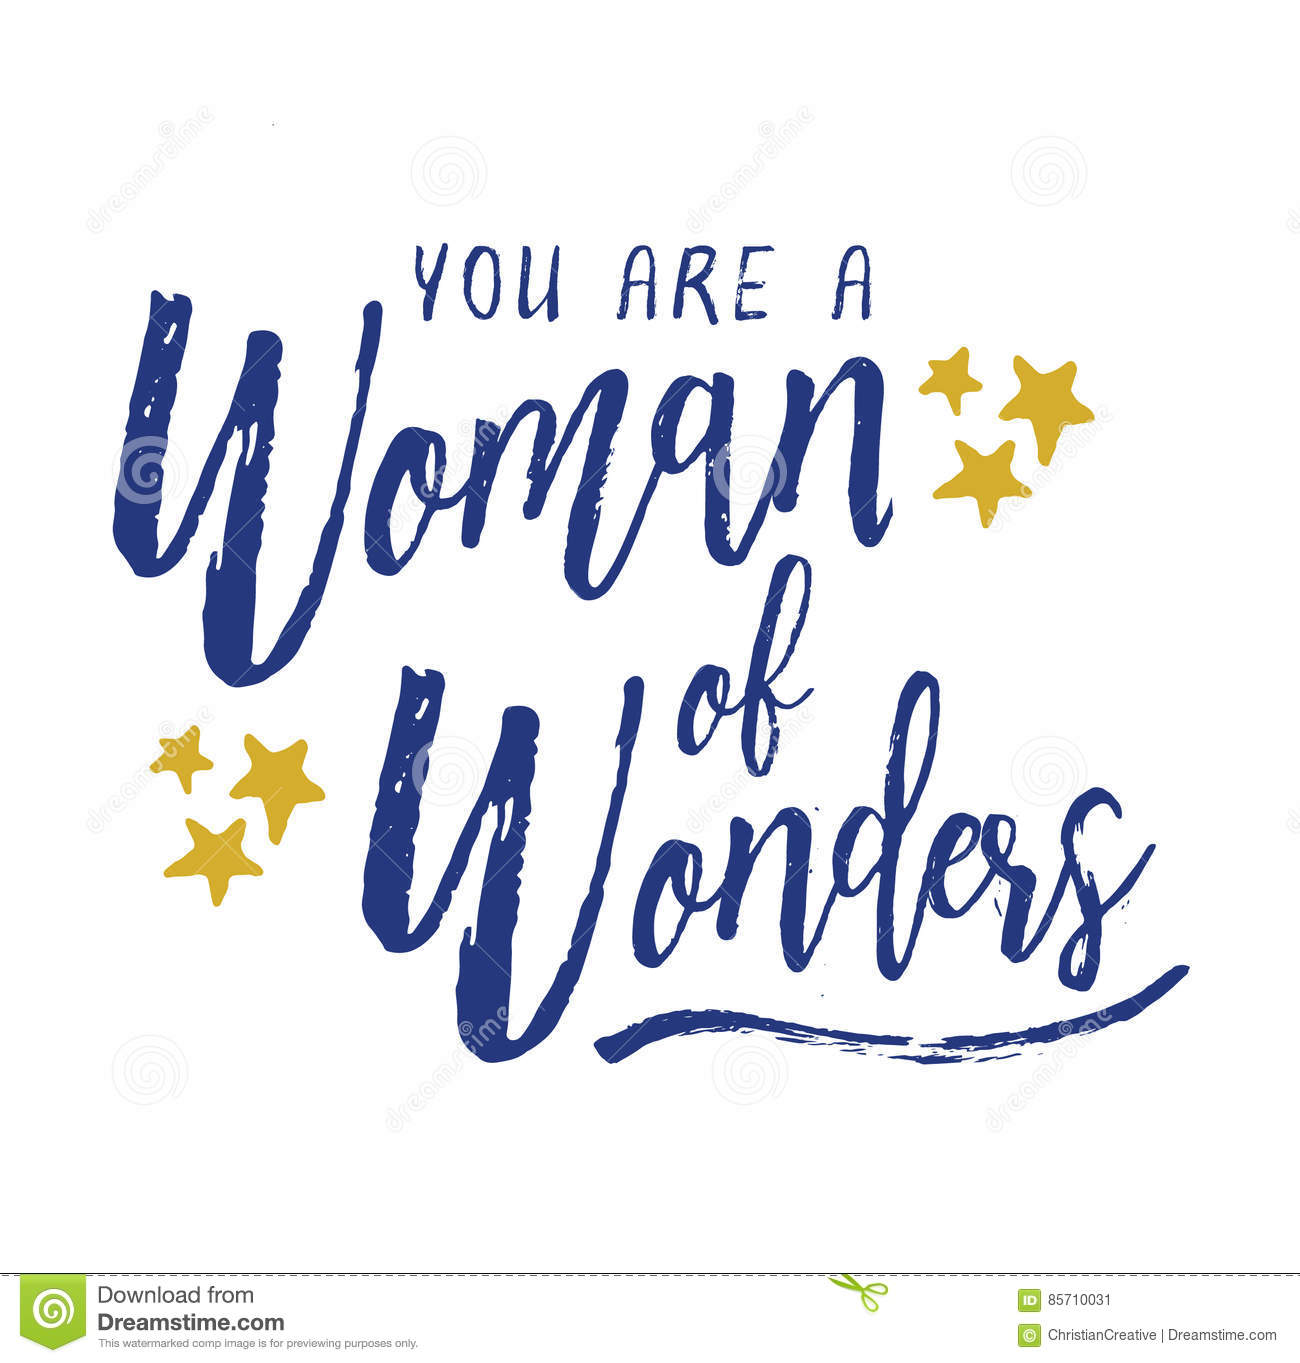 You are a Woman of Wonders.